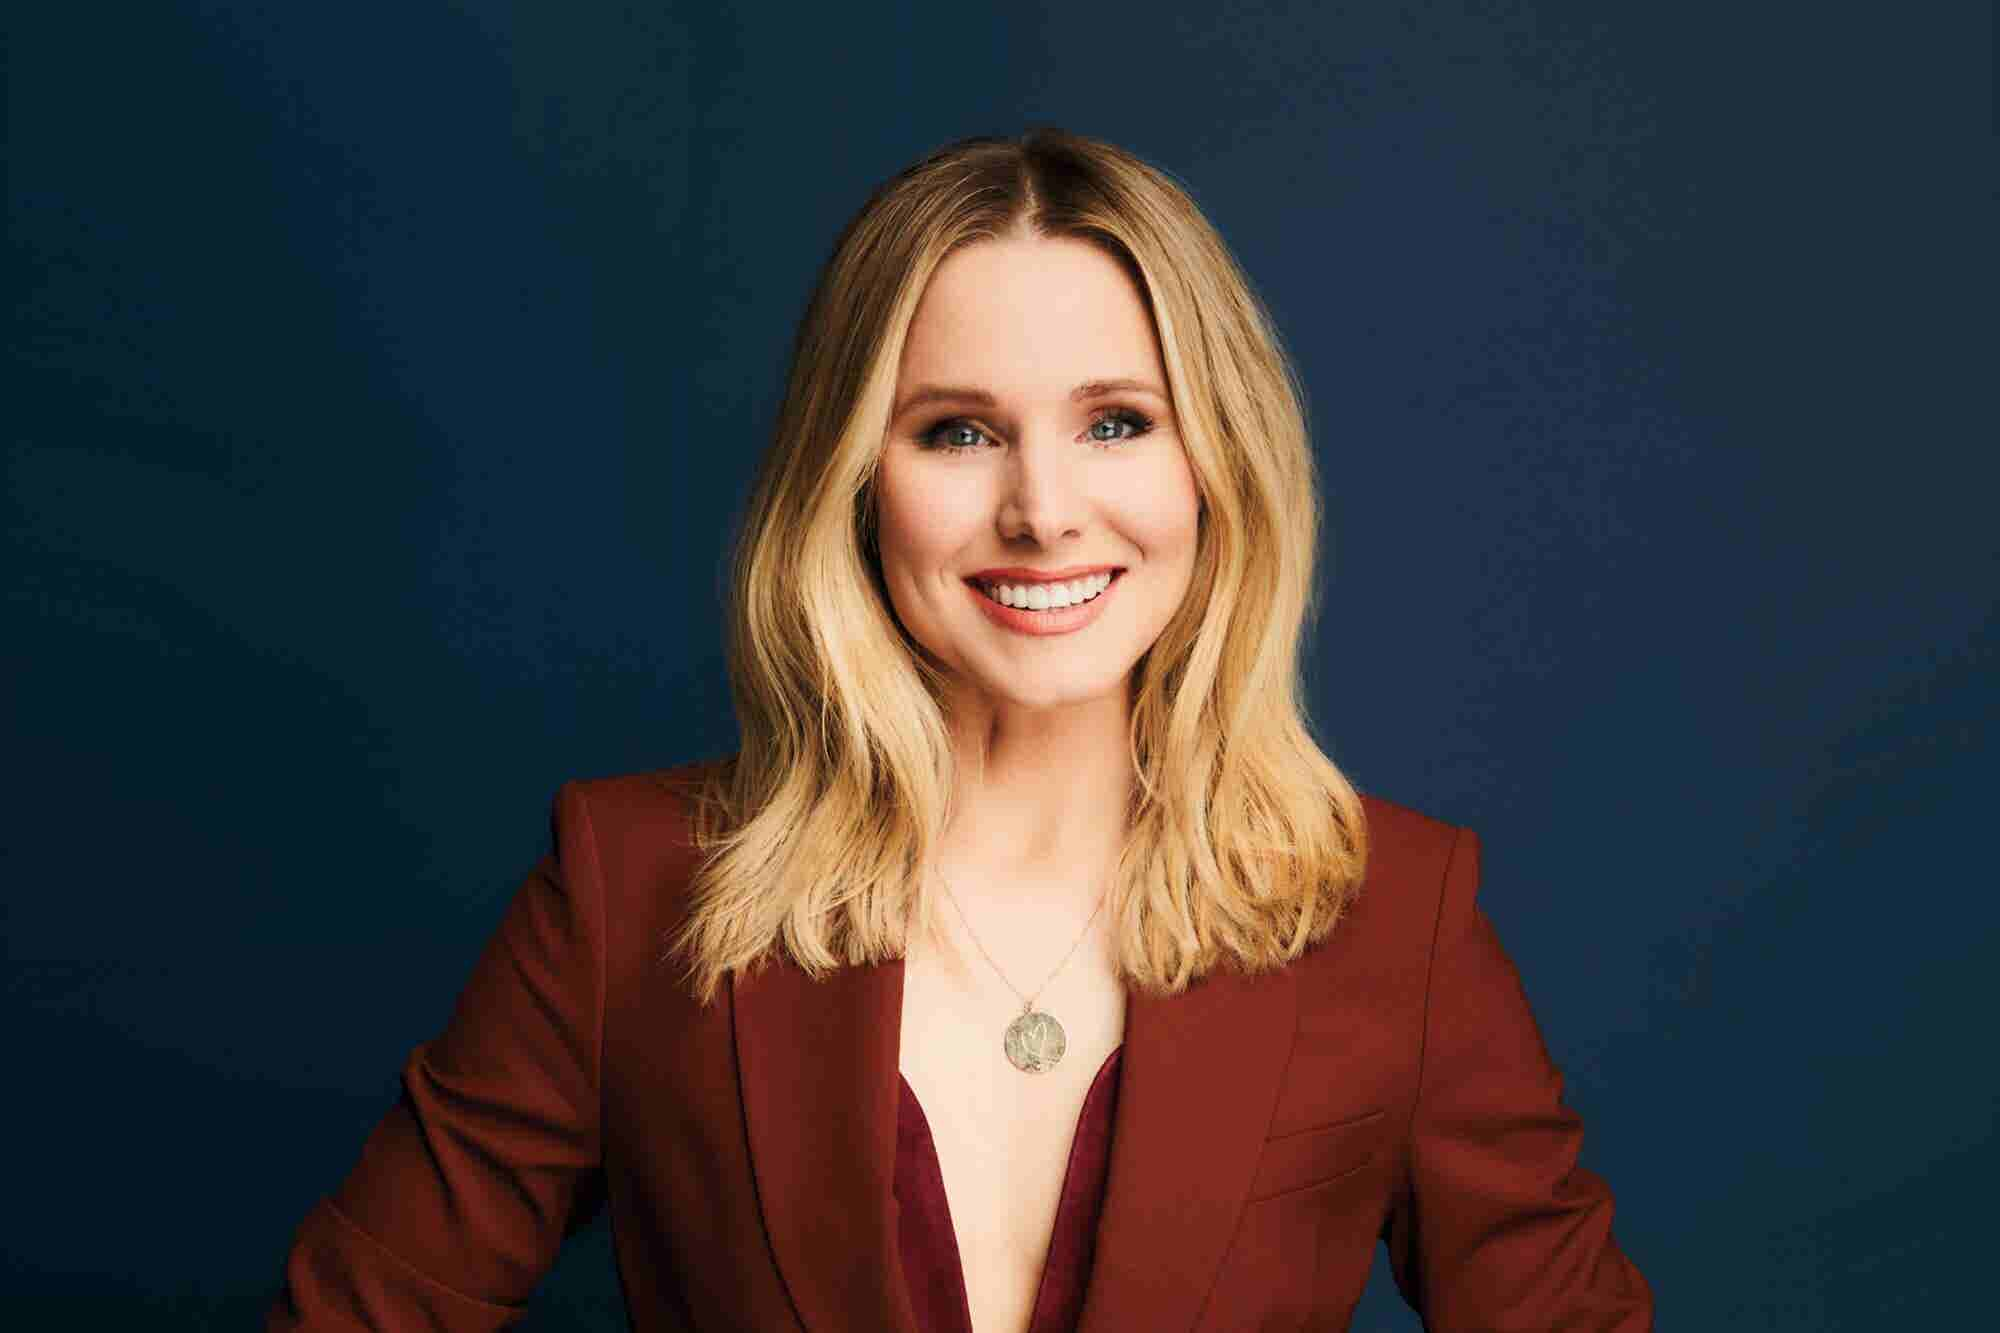 Kristen Bell and Her Cofounders Built a Company to Save Lives. But Growing It Wasn't So Simple.